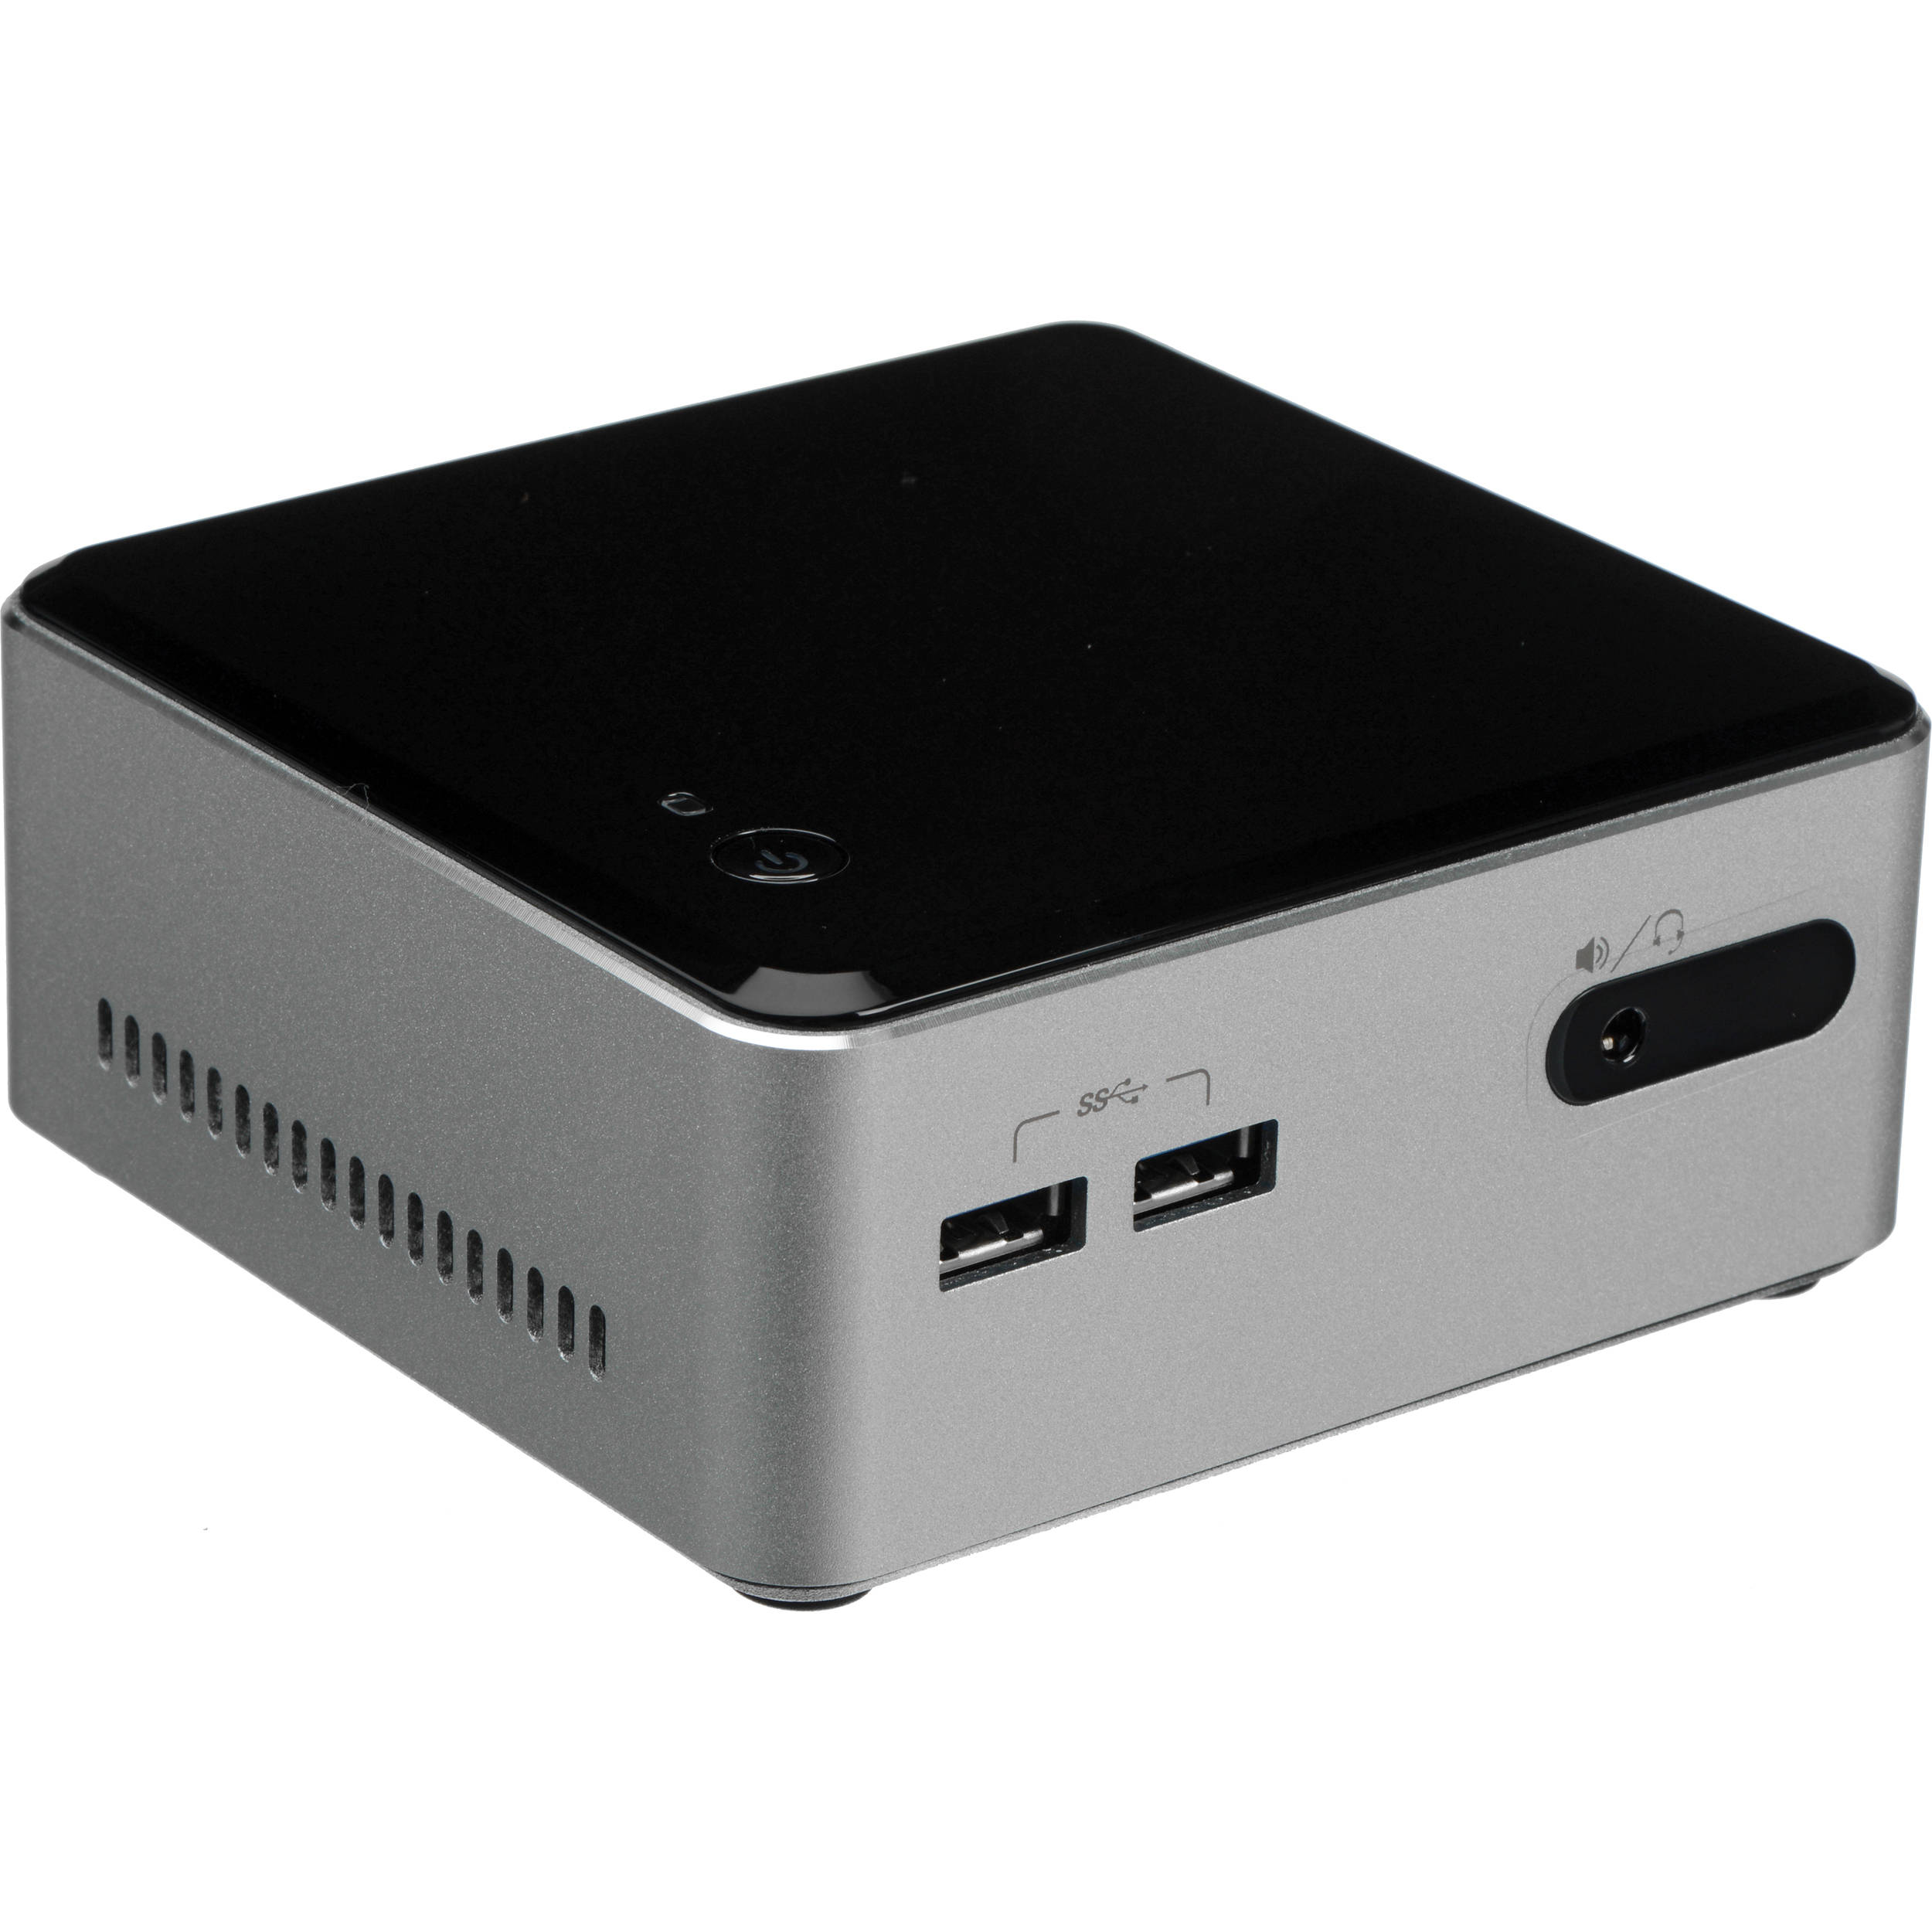 intel nuc core i5 4250 mini pc 8gb ram 240gb ssd hd 5000 windows 10 ebay. Black Bedroom Furniture Sets. Home Design Ideas